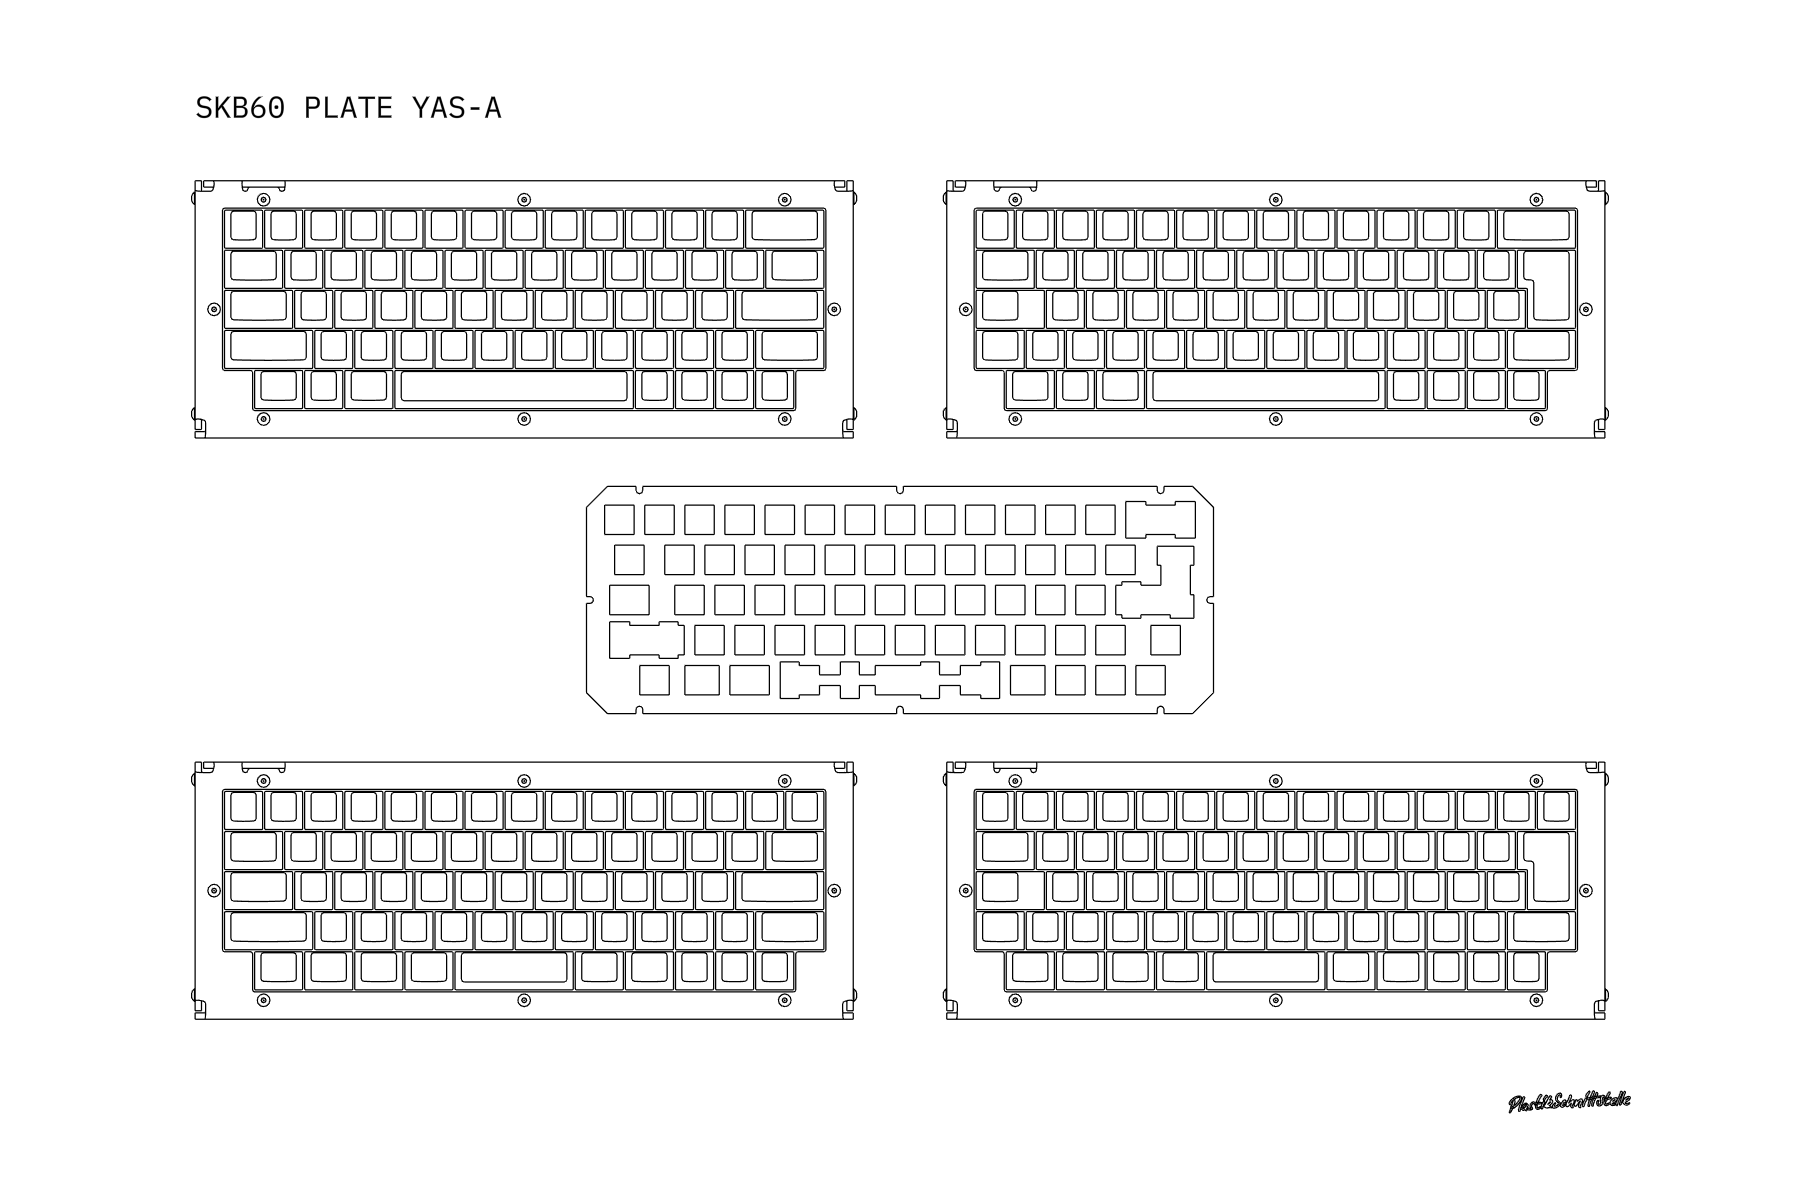 SKB60-PLATE-YAS-A.png